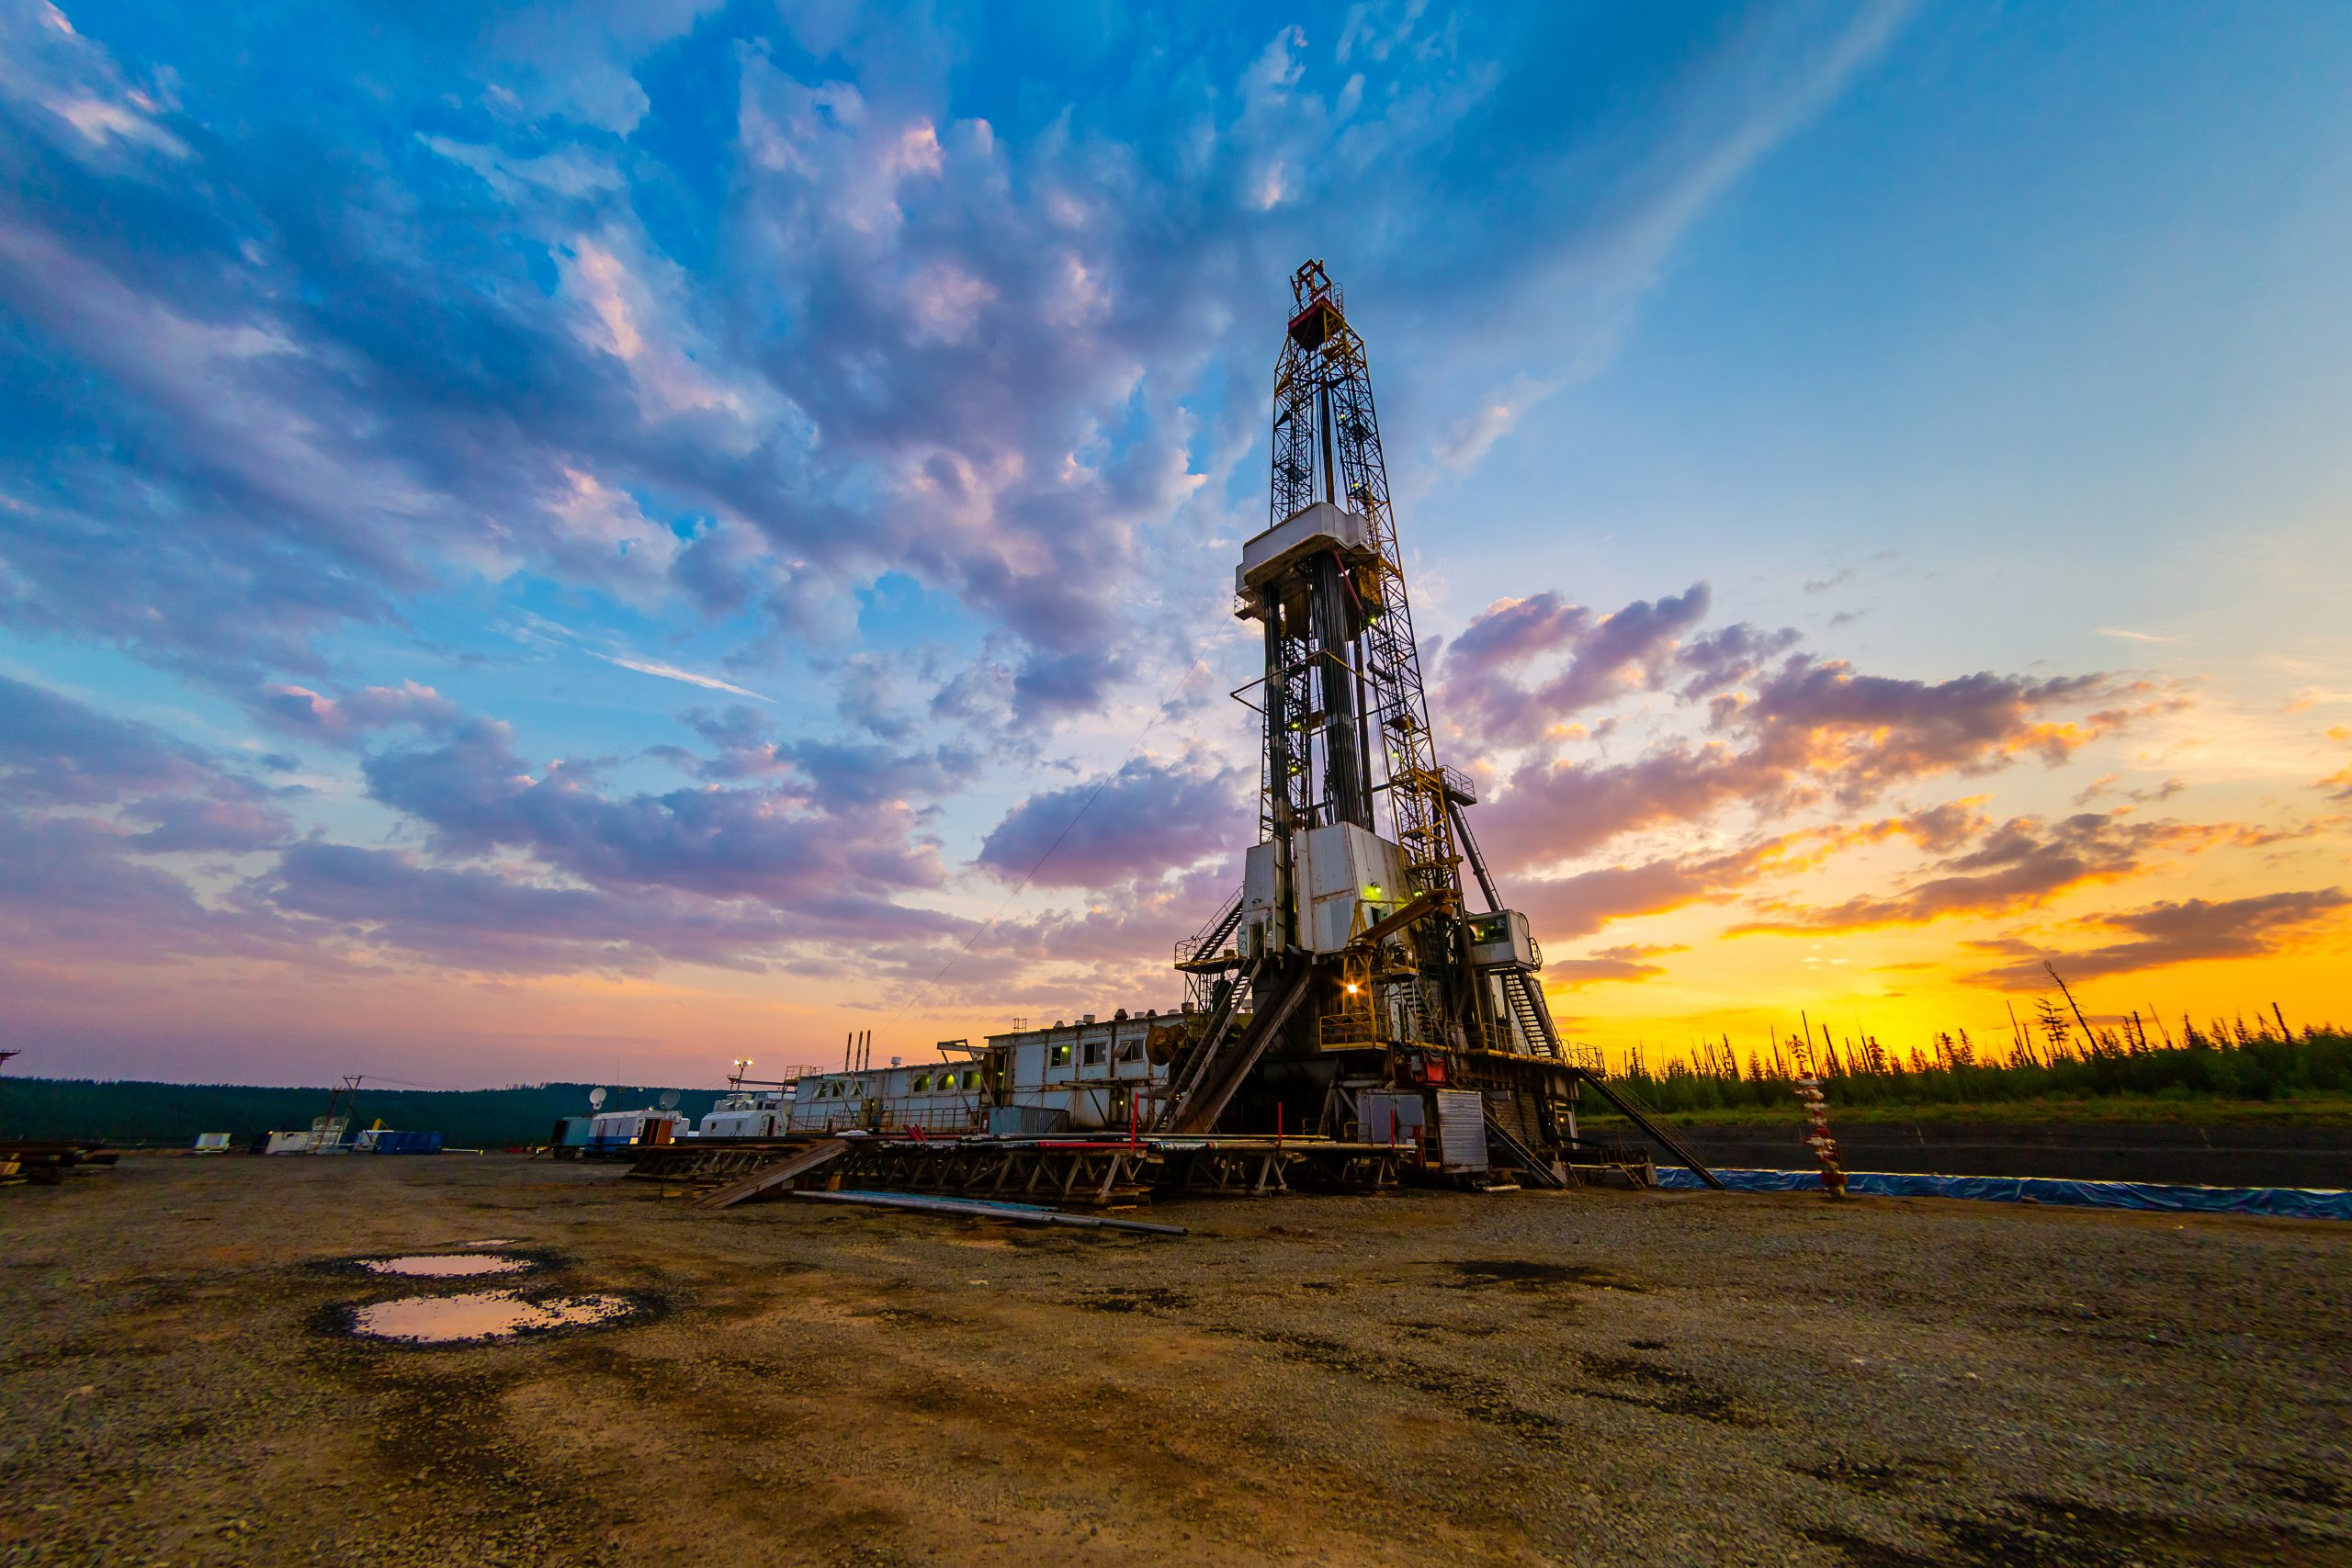 View,Of,The,Device,Of,An,Oil,Drilling,Rig